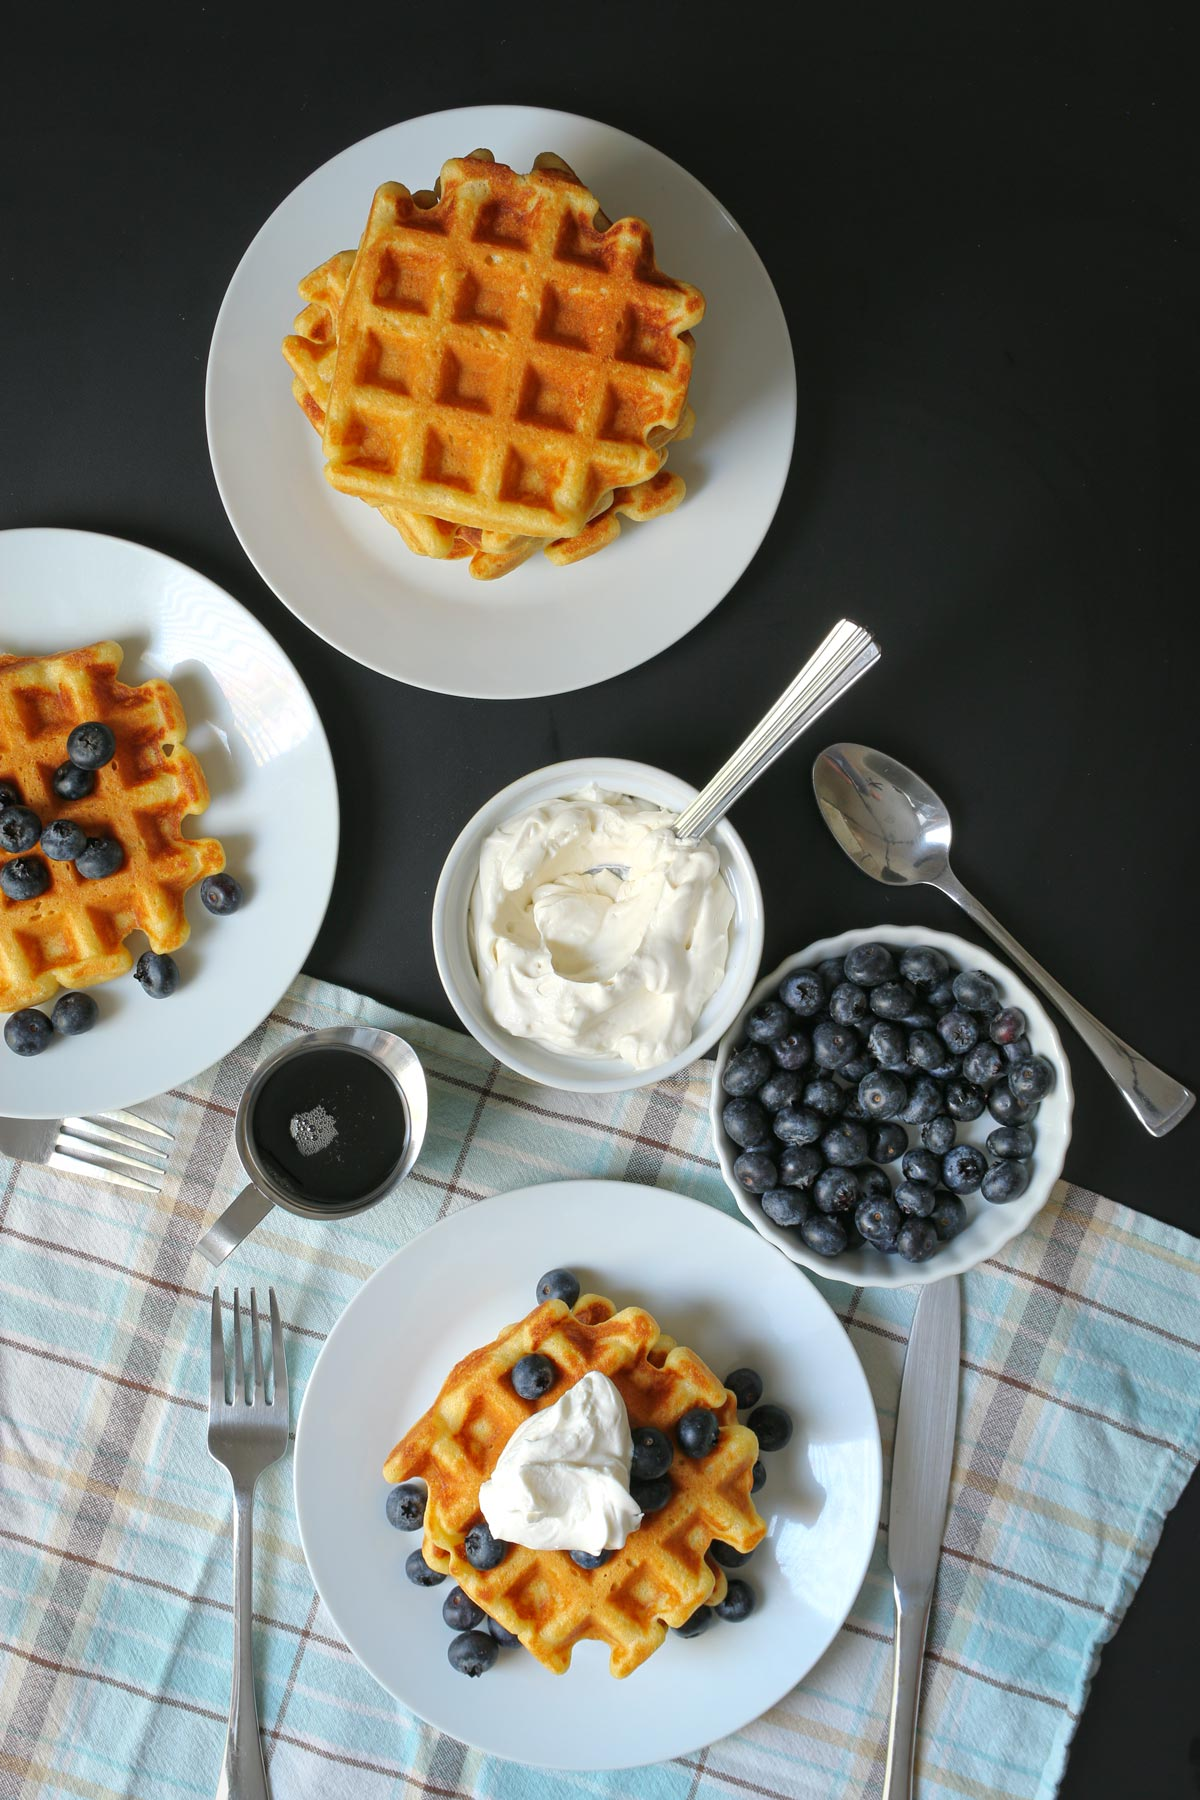 breakfast table set with waffles, syrup, whipped cream, and blueberries.